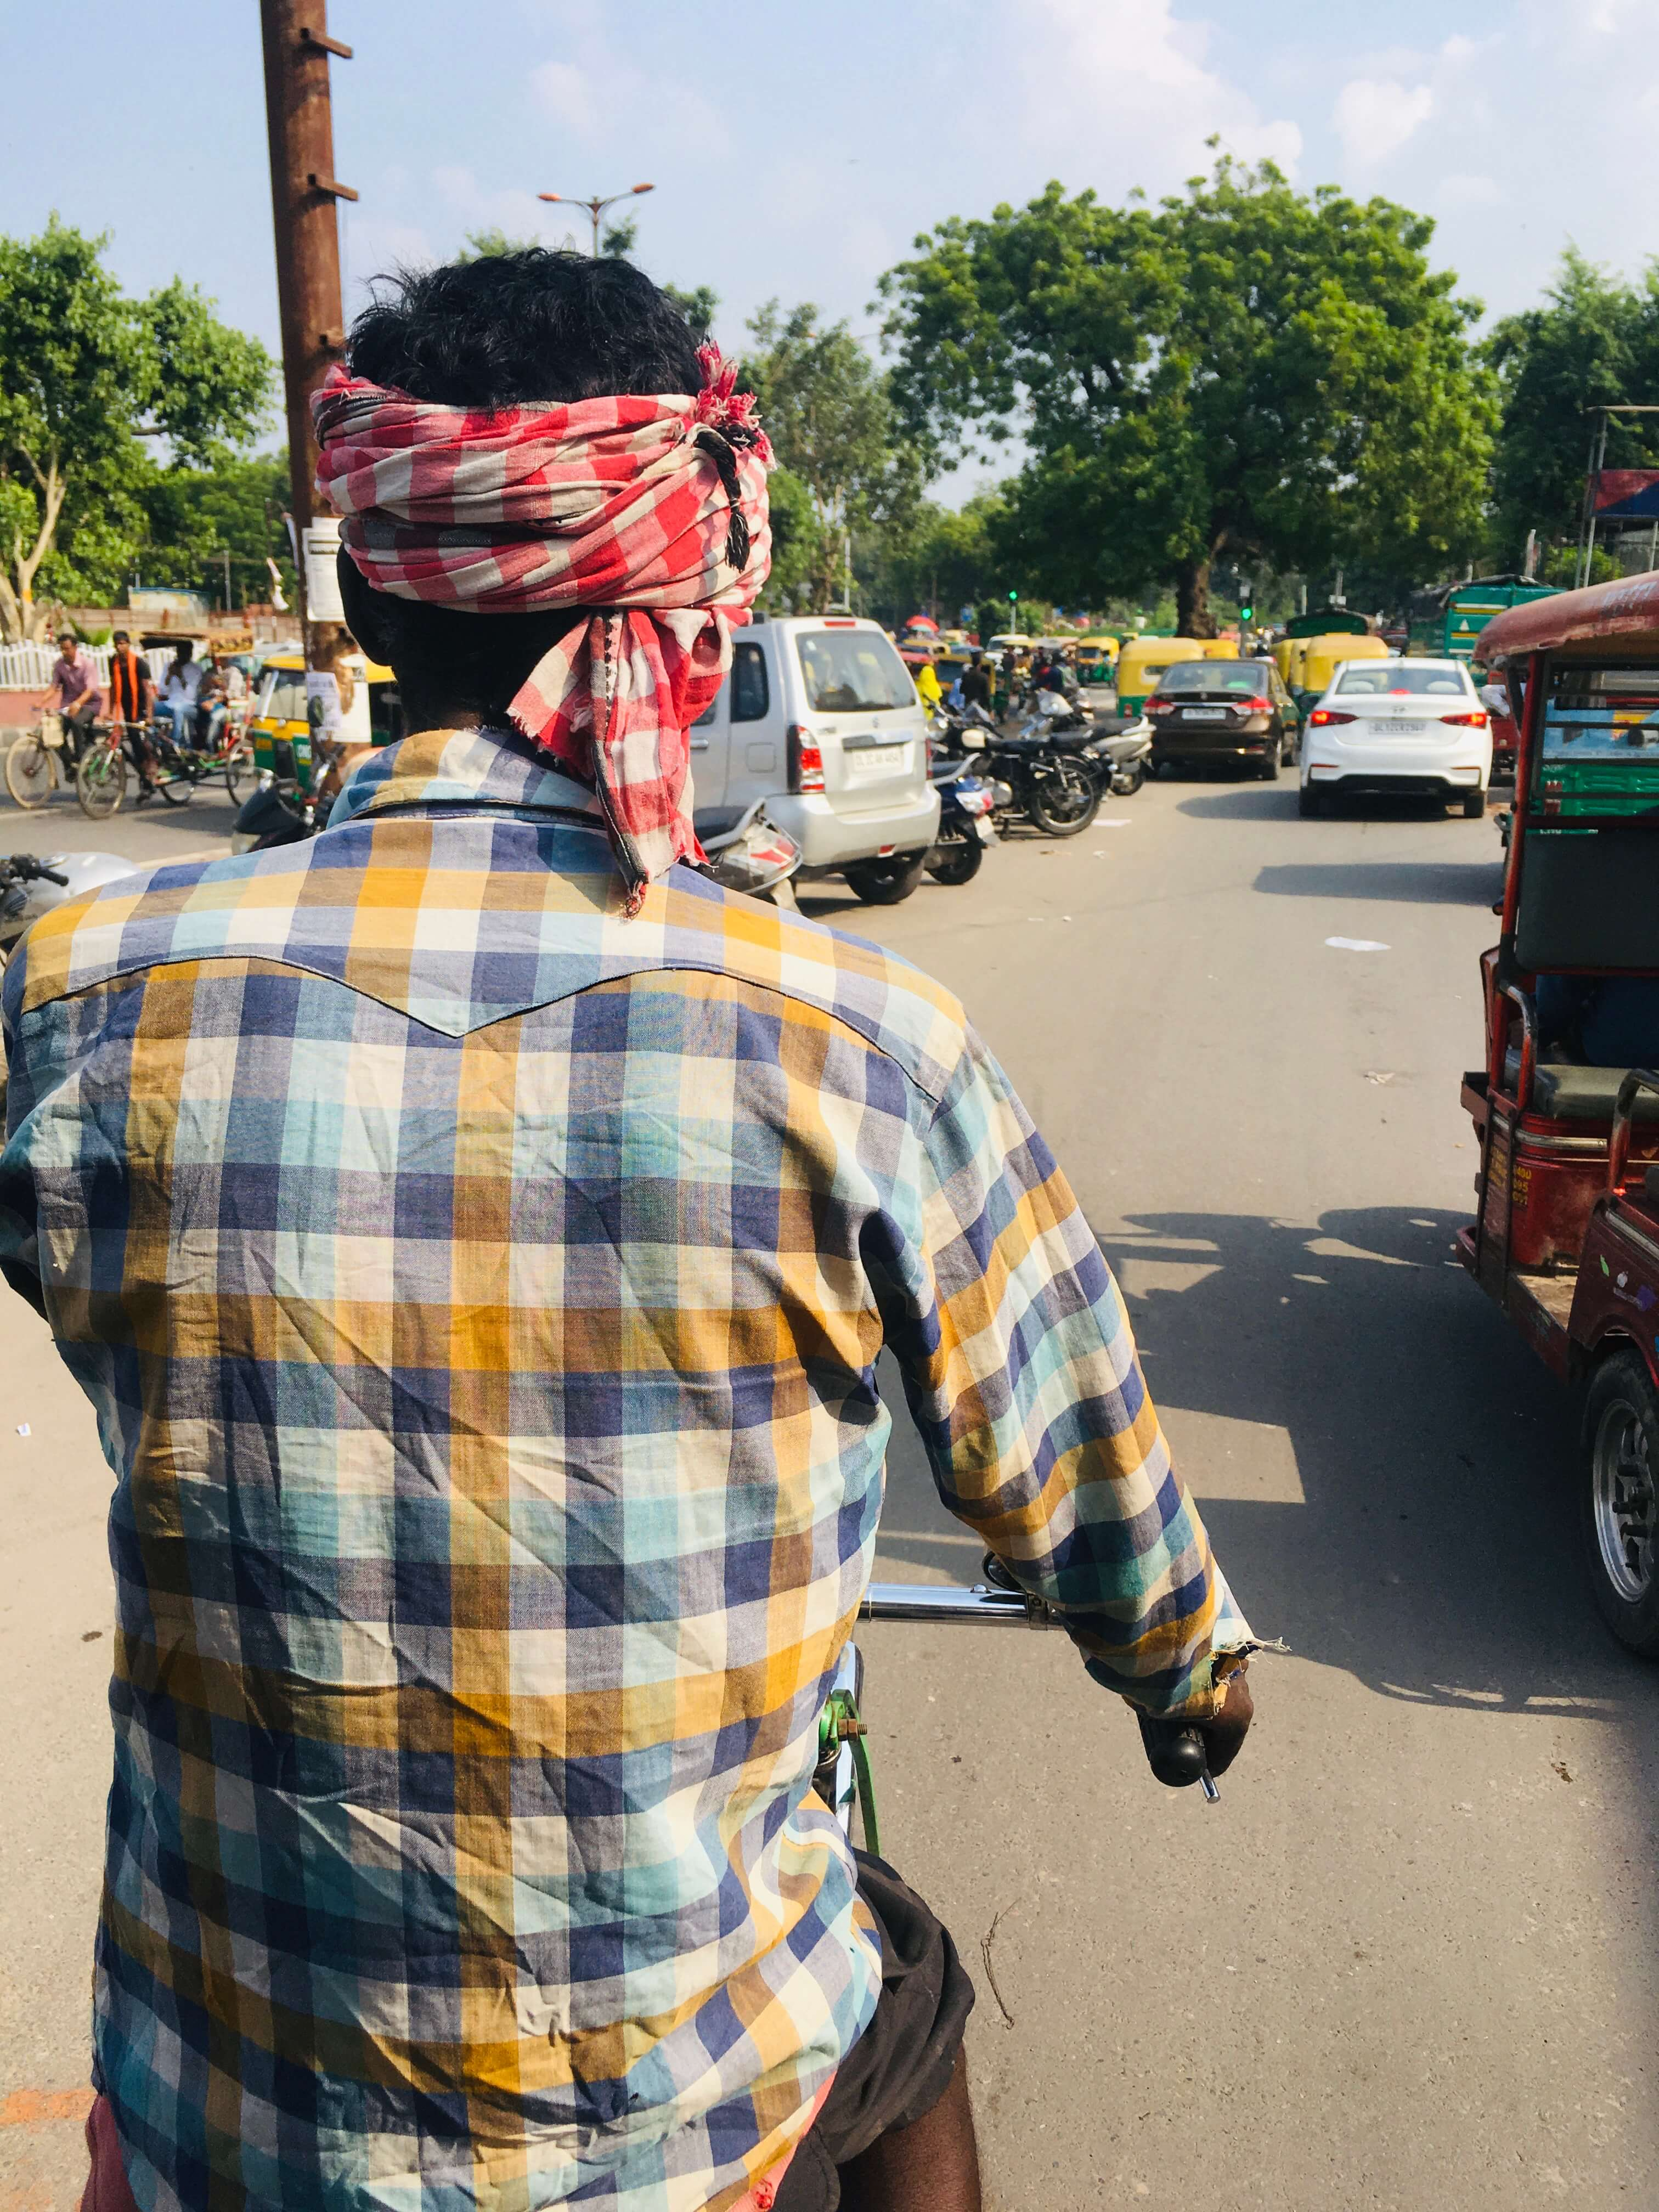 A Wander-Lust that Took us to the Streets of Delhi | indiator